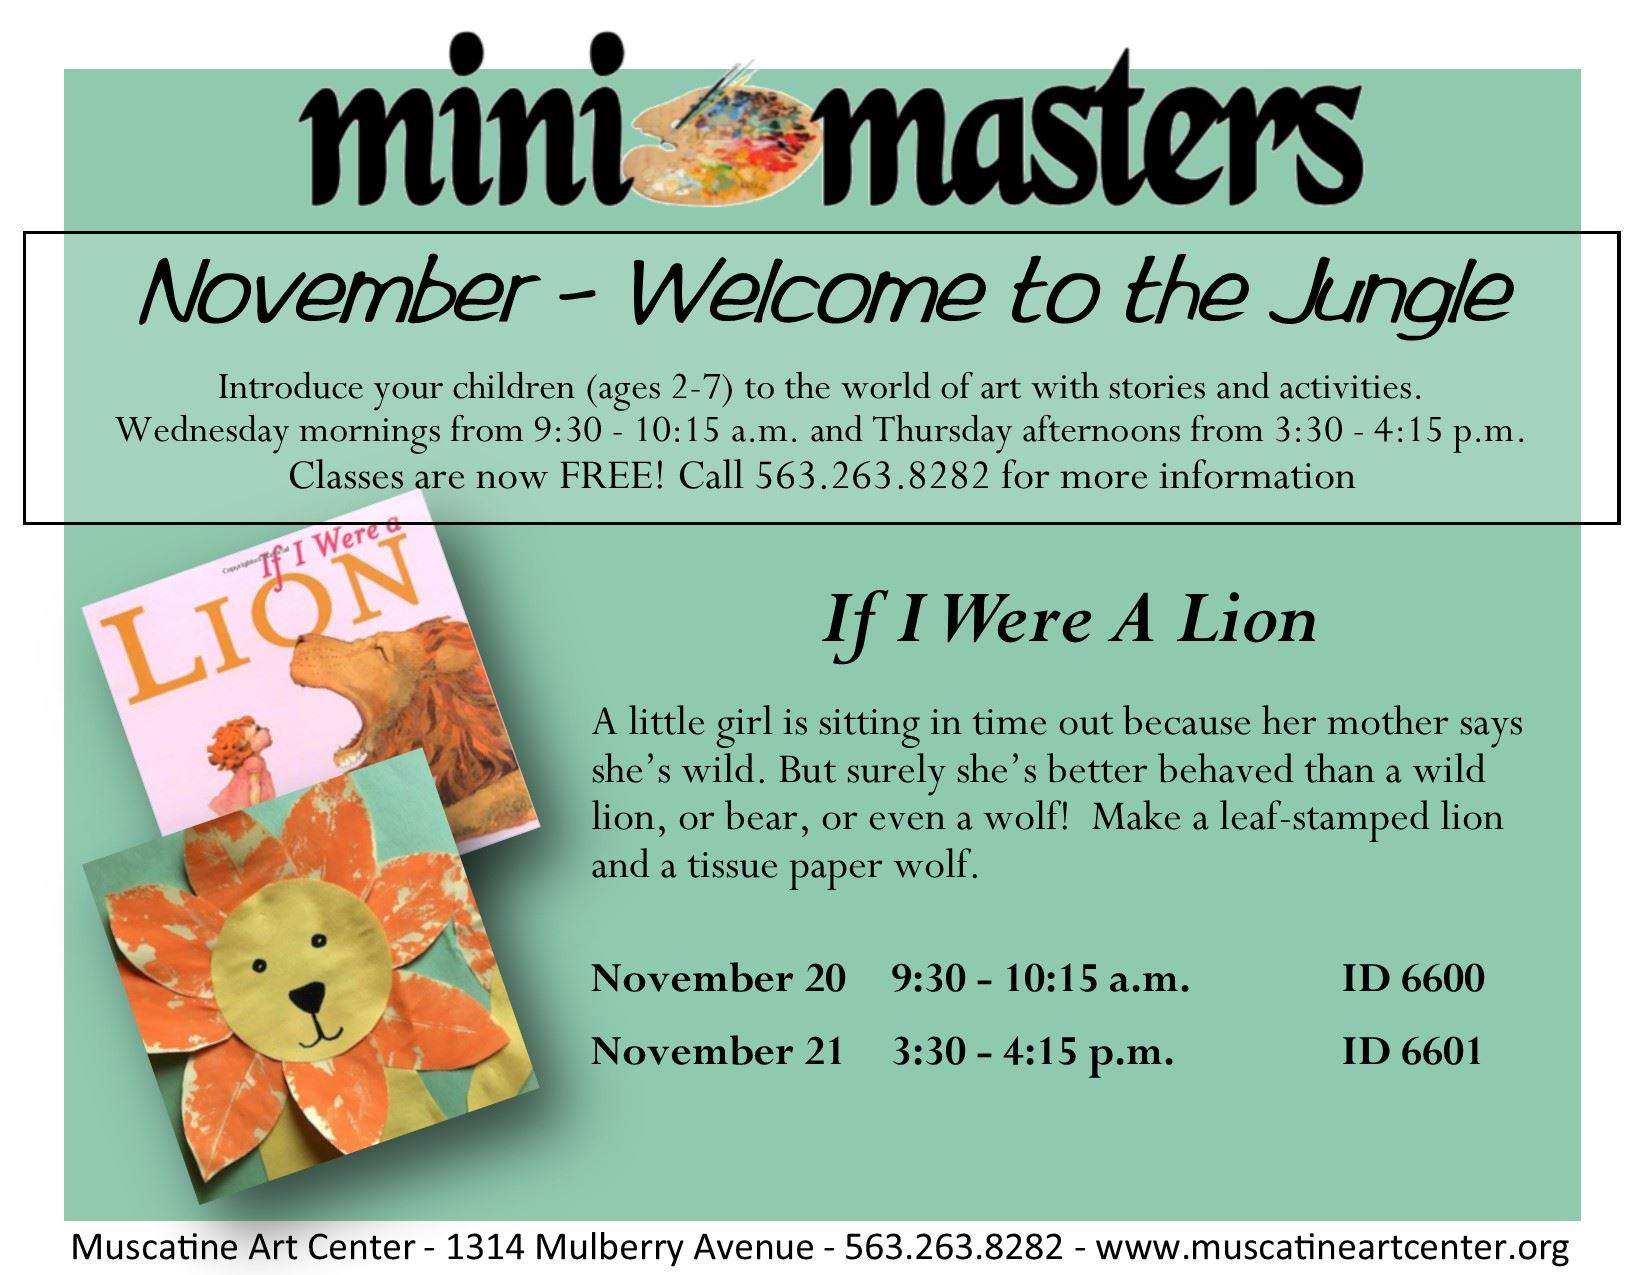 November 20-21 - If I Were A Lion - mini masters